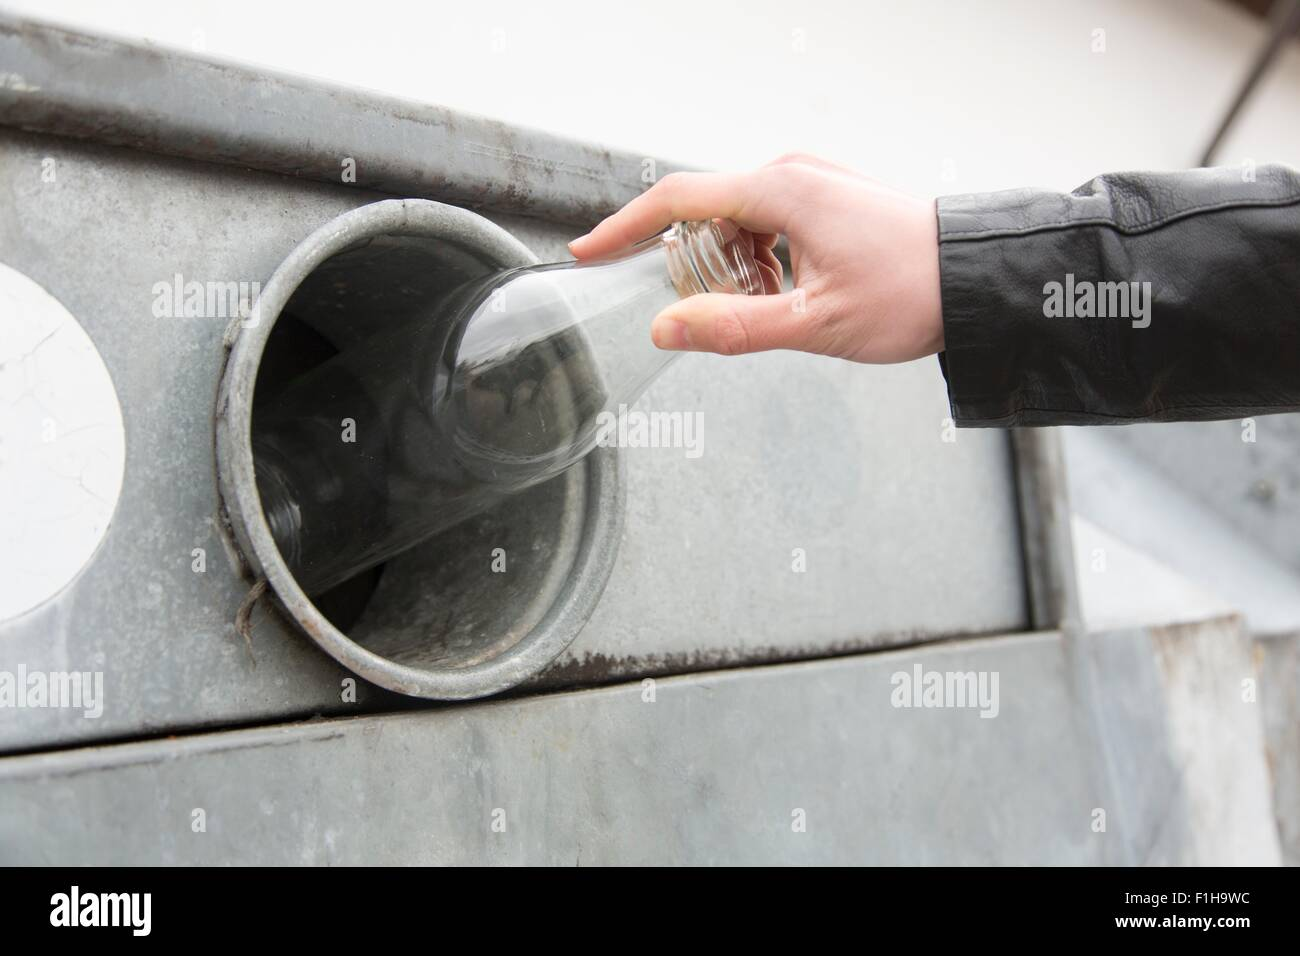 Person recycling milk bottle in bottle bank - Stock Image